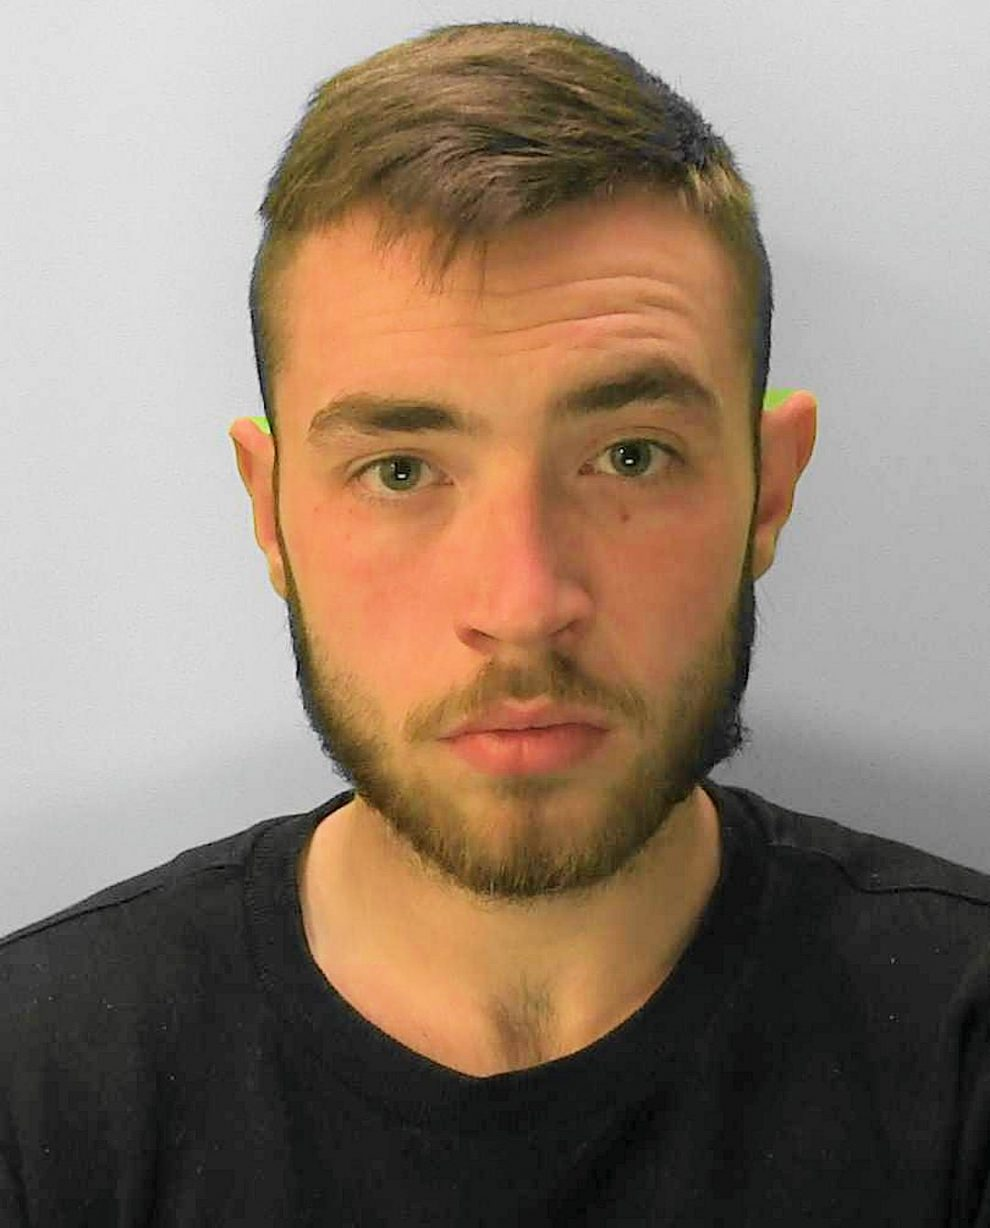 Lee Cummings, 18 banned from parts of Uckfield town centre for two years